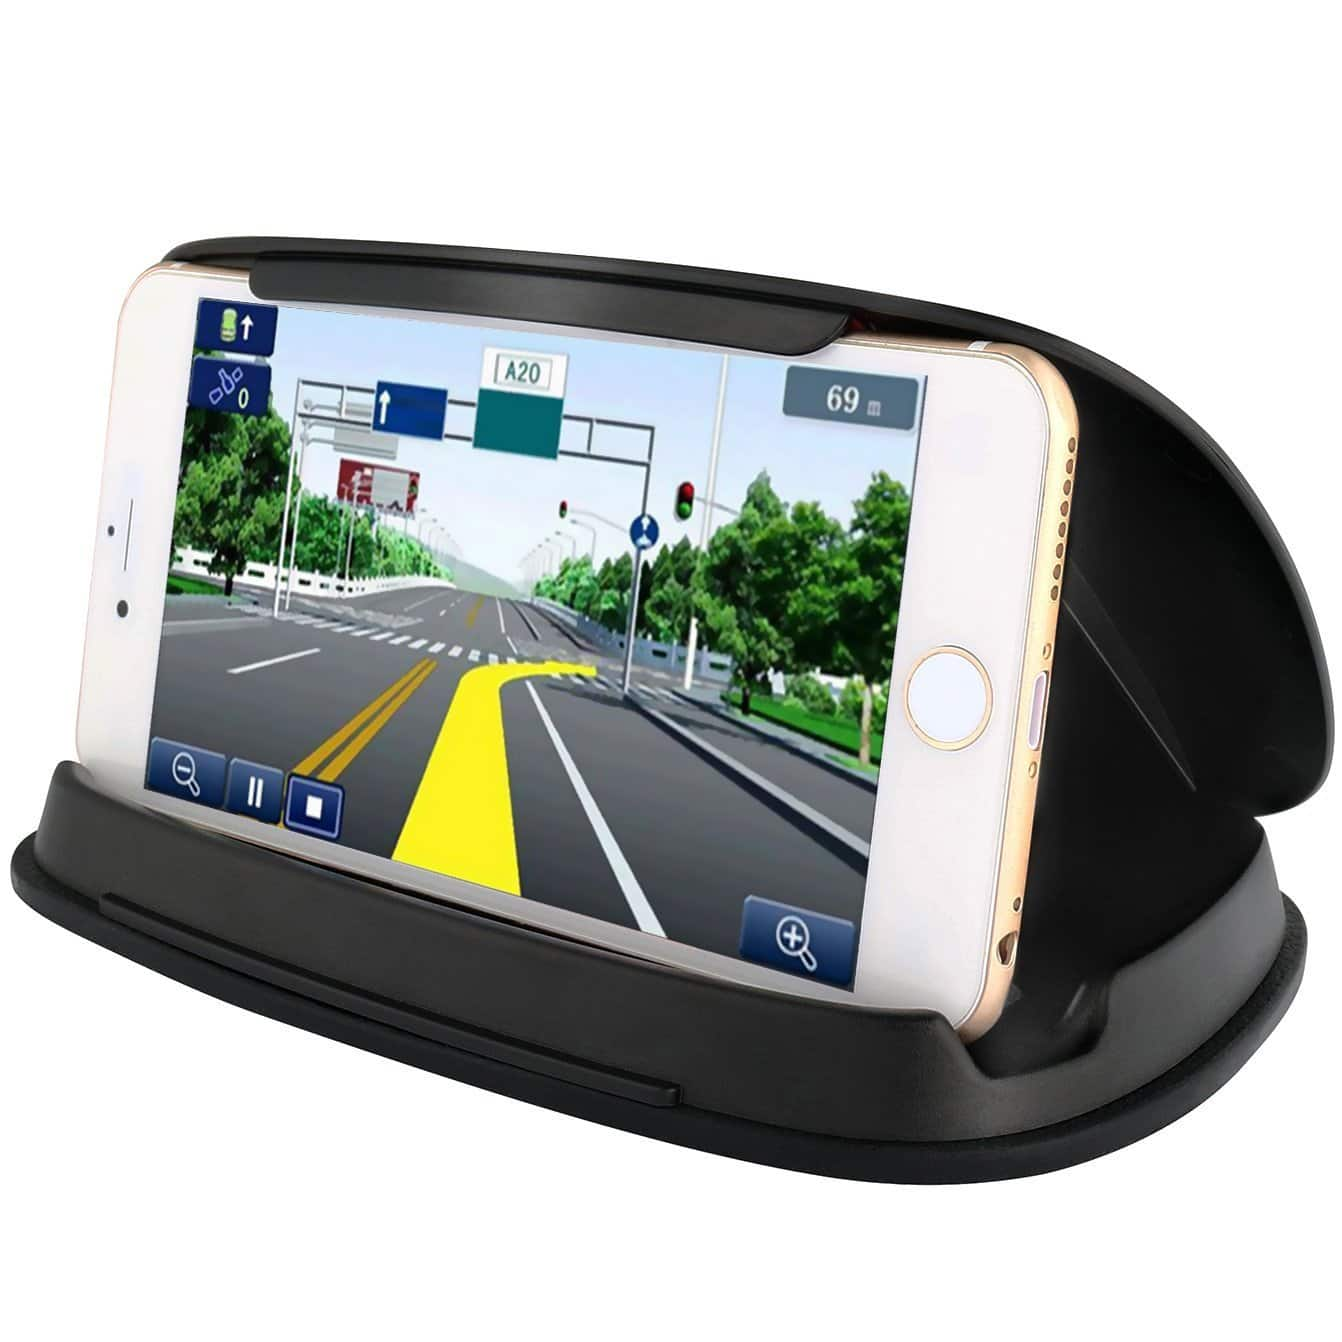 [Amazon] Cell Phone Holder for Car, Car Phone Mounts for 3-6.8 Inch Universal Smartphones, GPS - Black $7.49 FS (reg. $12.99)